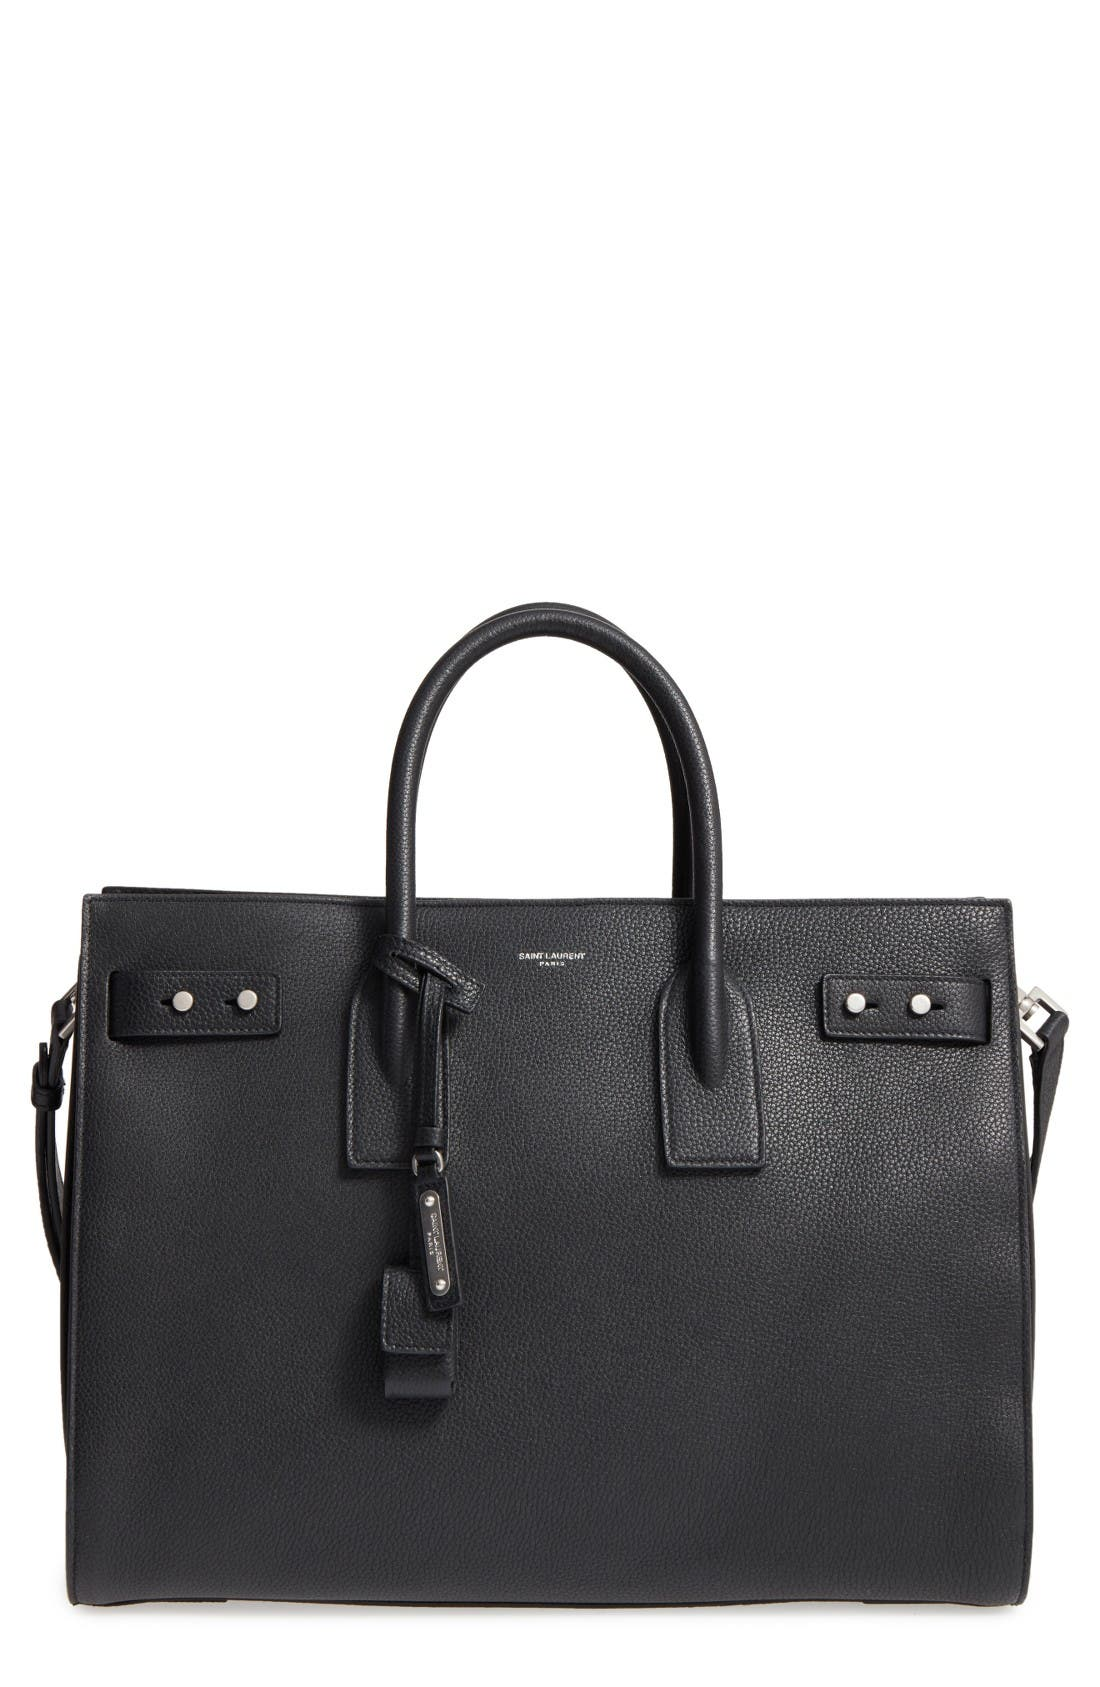 Alternate Image 1 Selected - Saint Laurent Medium Sac de Jour Grained Leather Tote